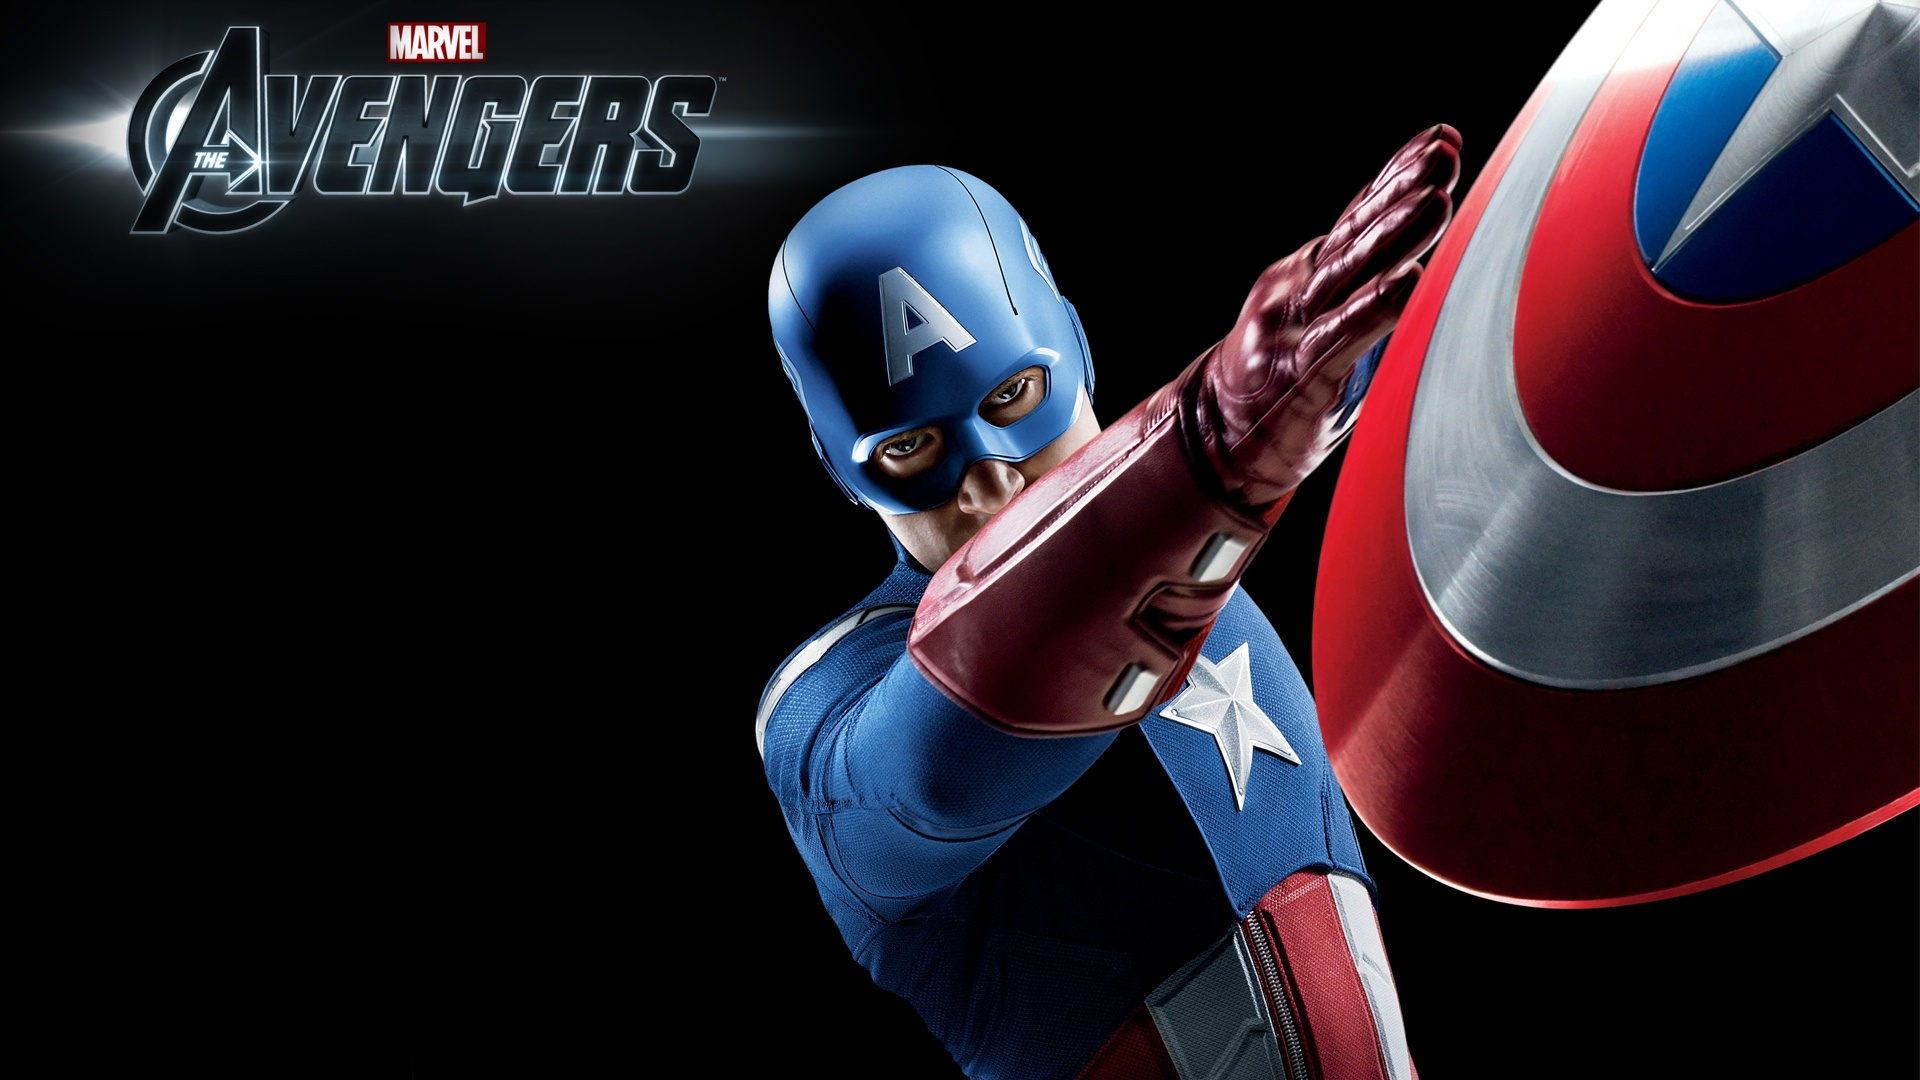 Captain America in The Avengers Wallpapers HD Wallpapers 1920x1080